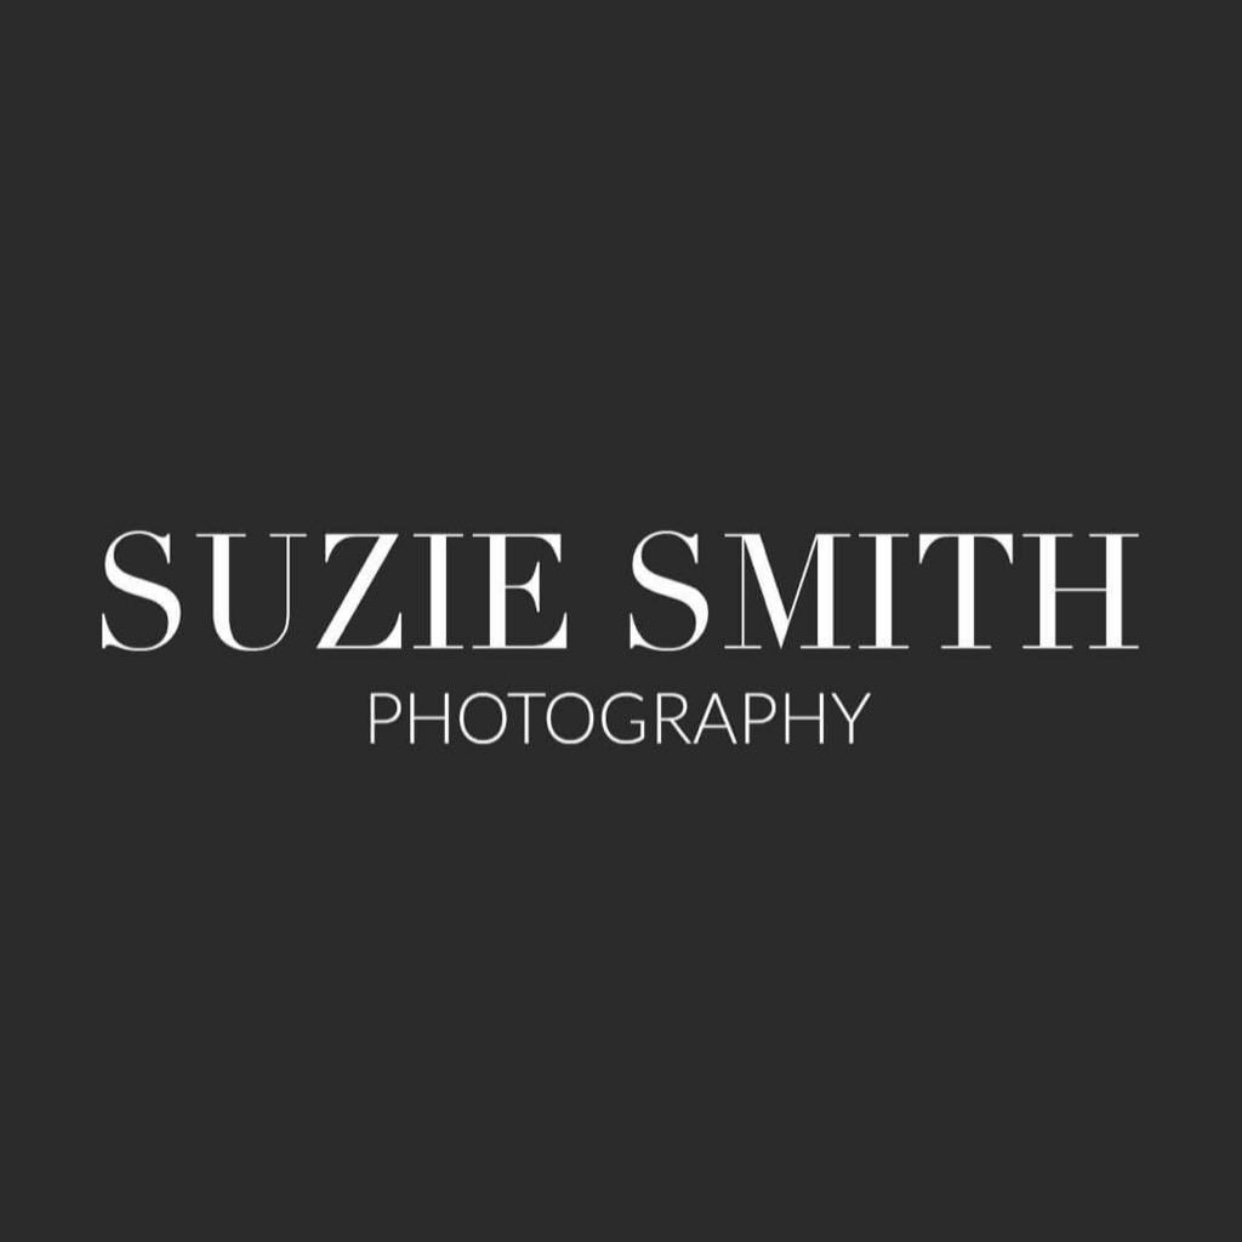 Suzie Smith Photography